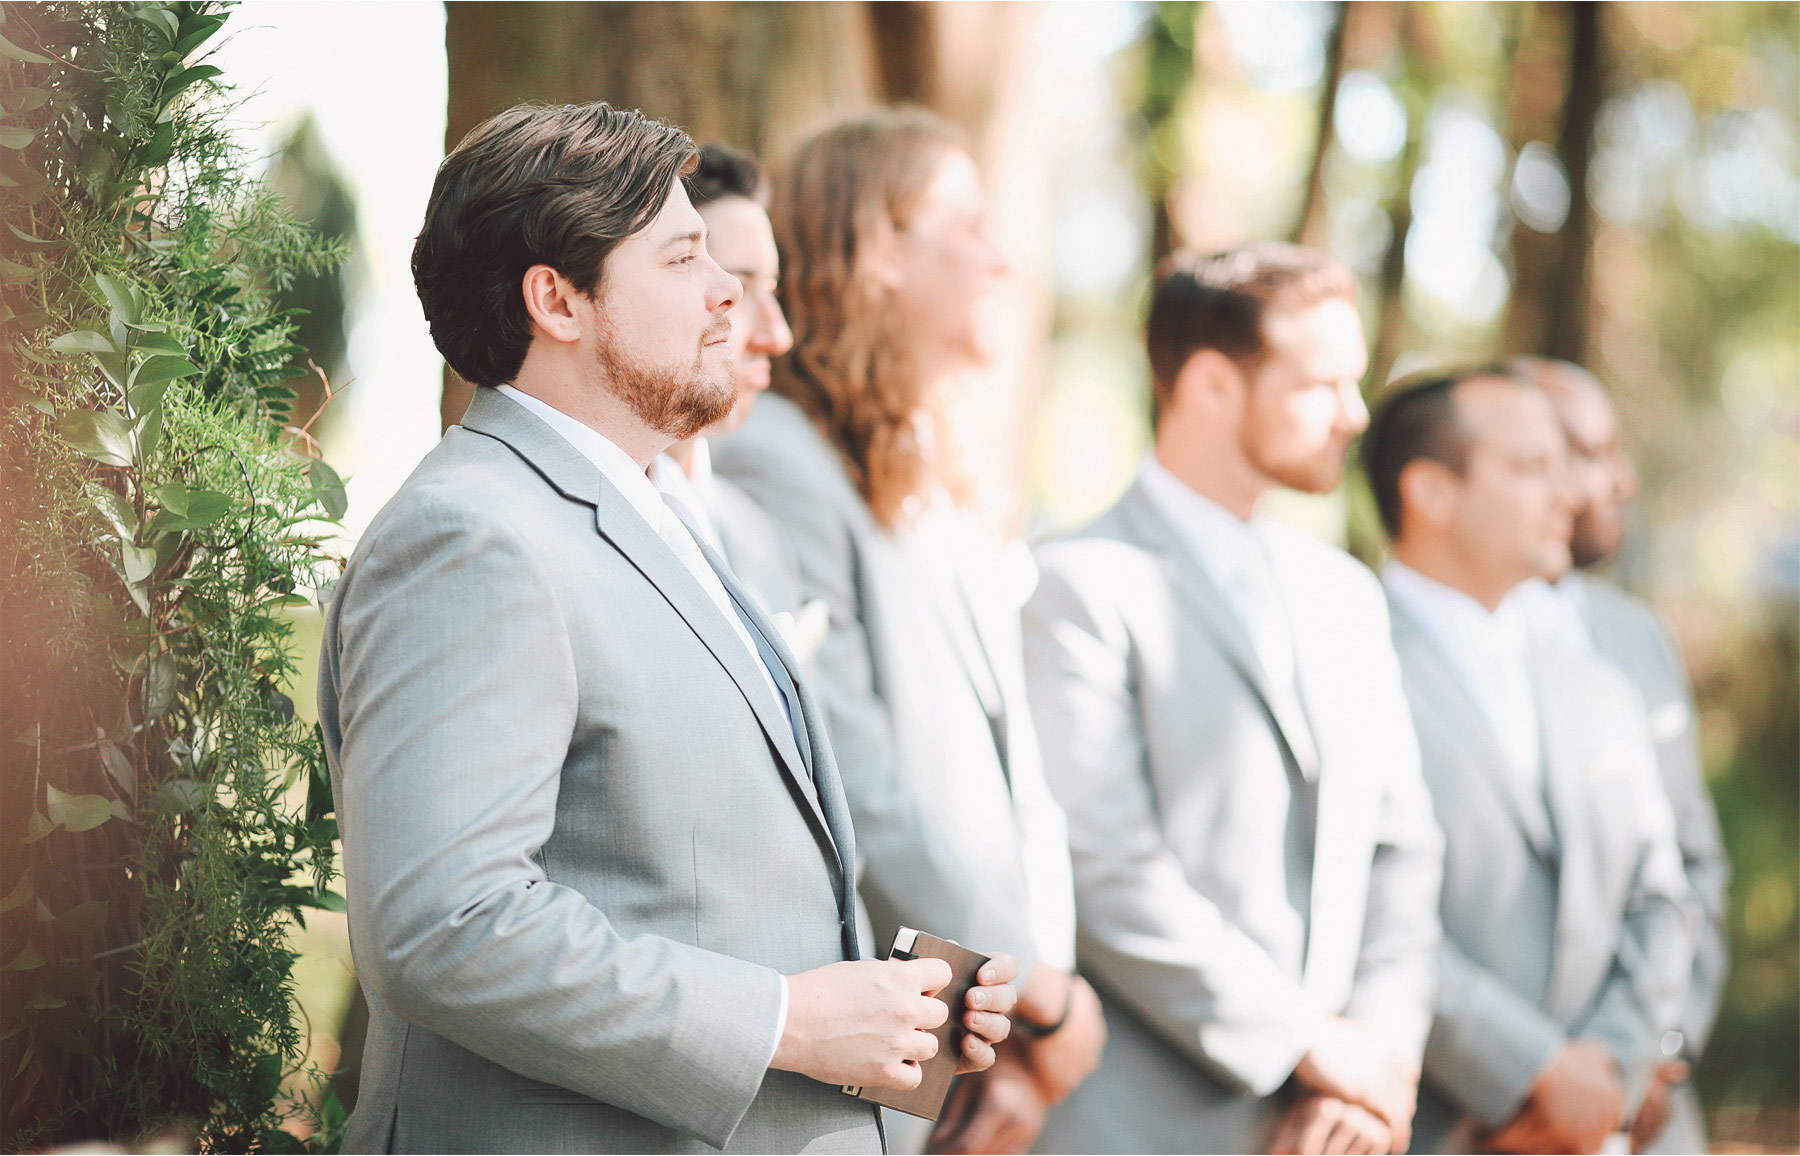 13-Brandon-Florida-Wedding-Photographer-by-Andrew-Vick-Photography-Casa-Lantana-Spring-Ceremony-Groom-Groomsmen-Vintage-Kristianna-and-Ben.jpg